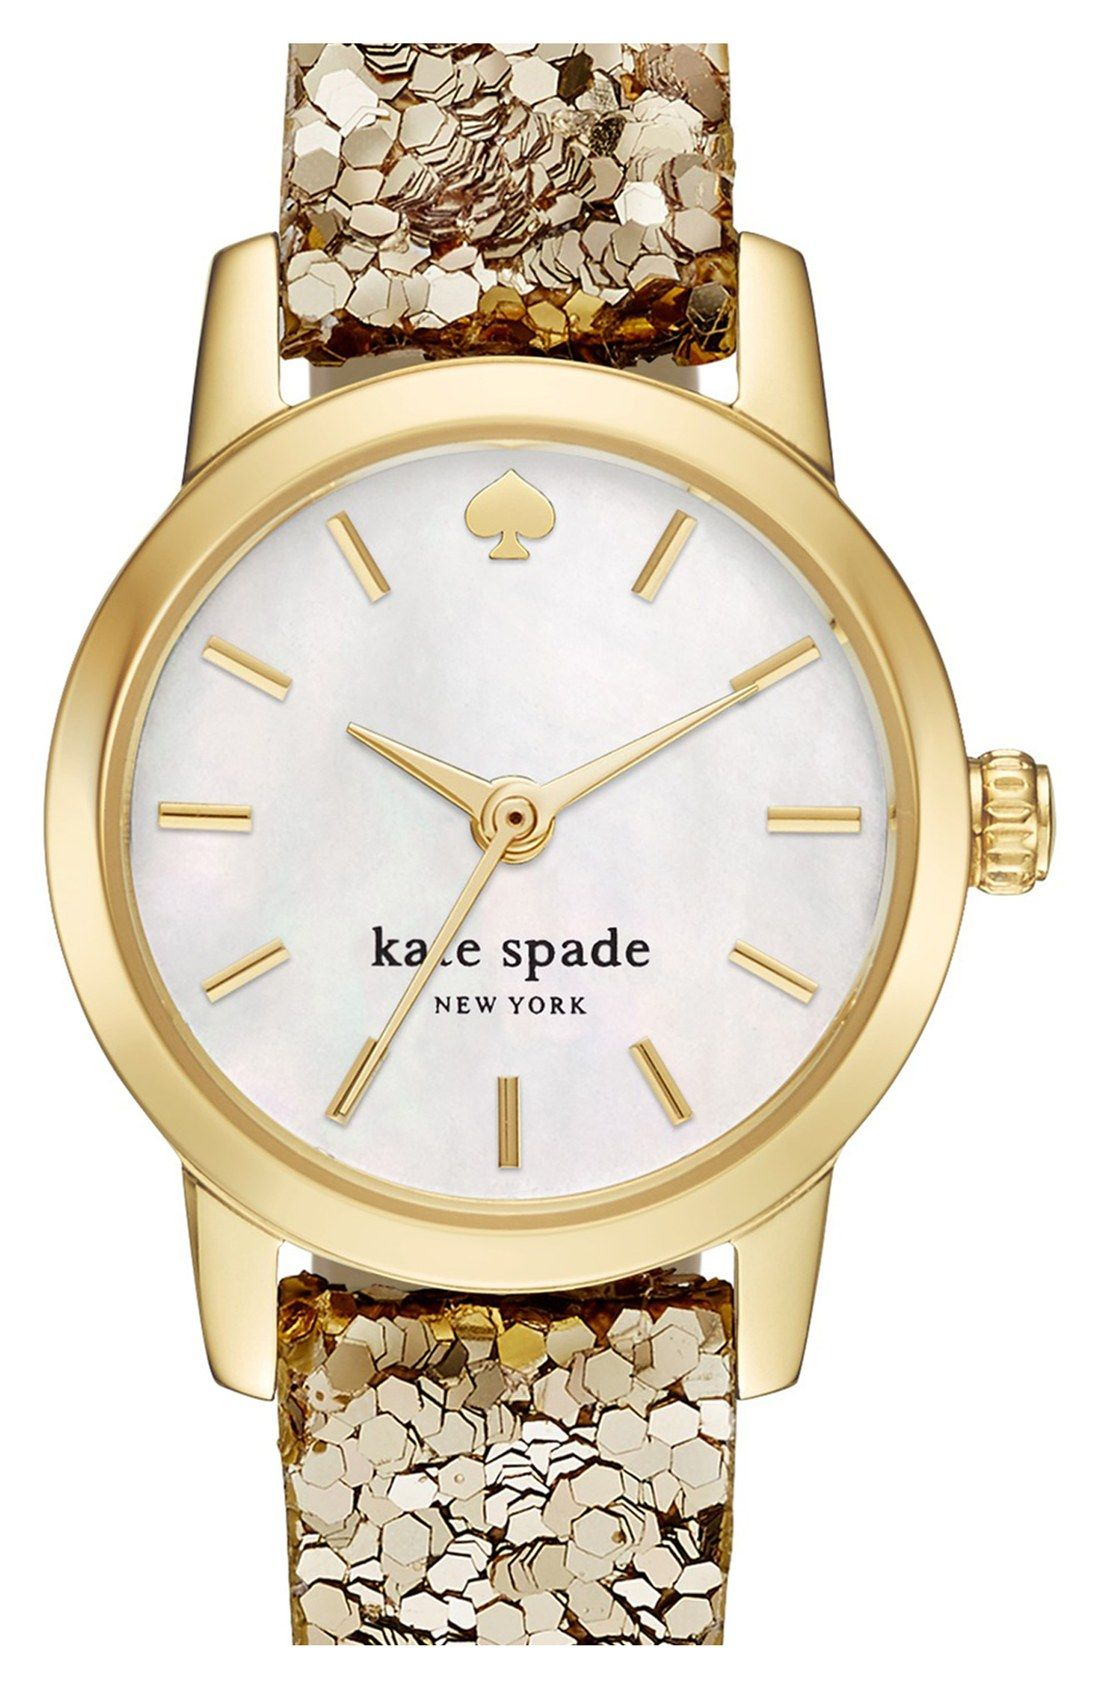 Crushing on this gold Kate Spade watch that gleams against the